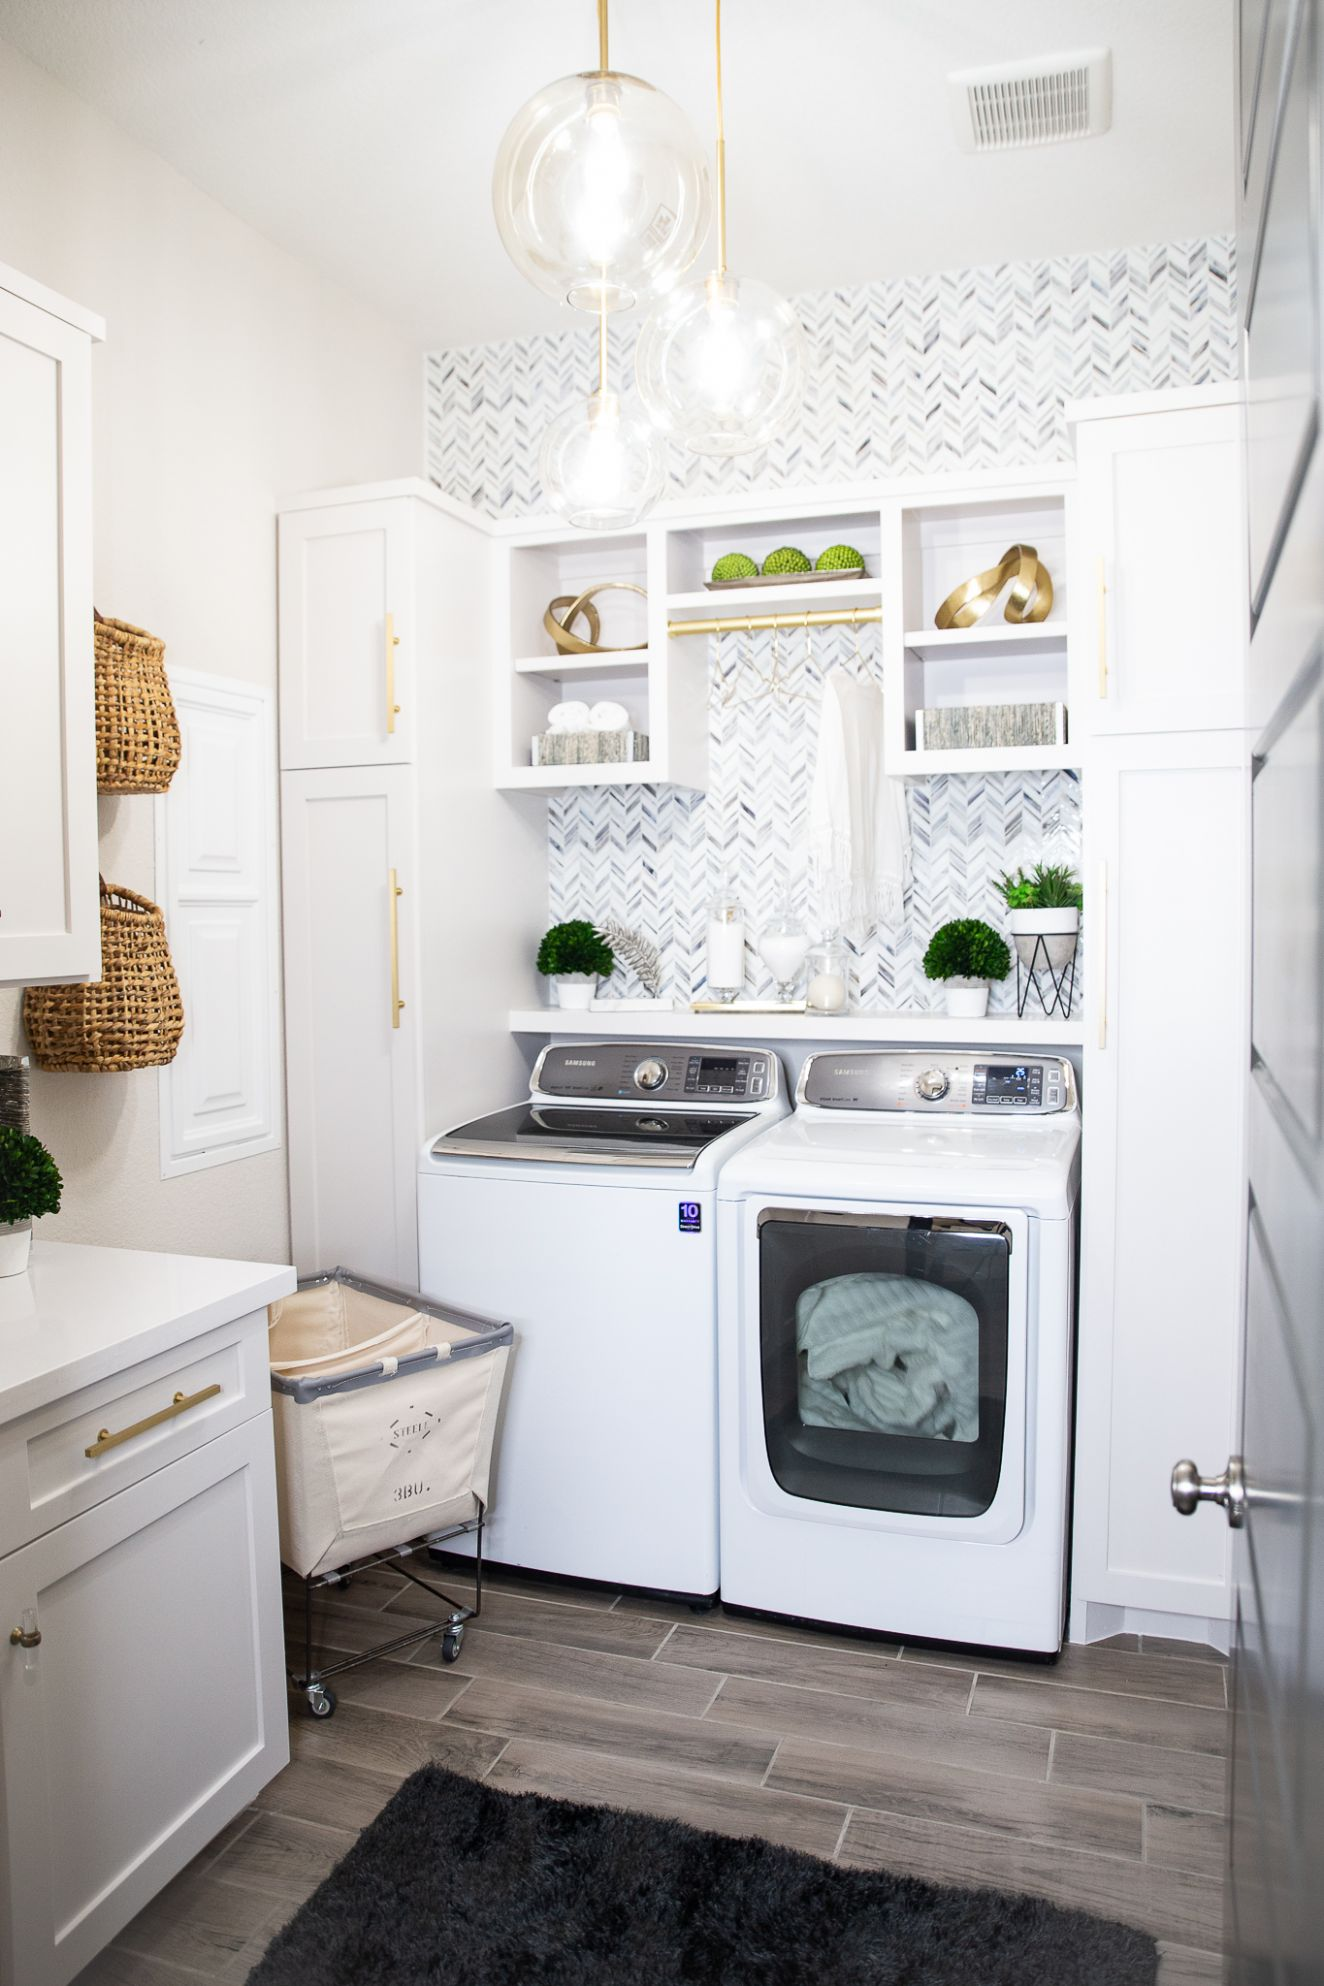 Laundry Room Makeover: Built-In Top Loader Washer and Dryer ...